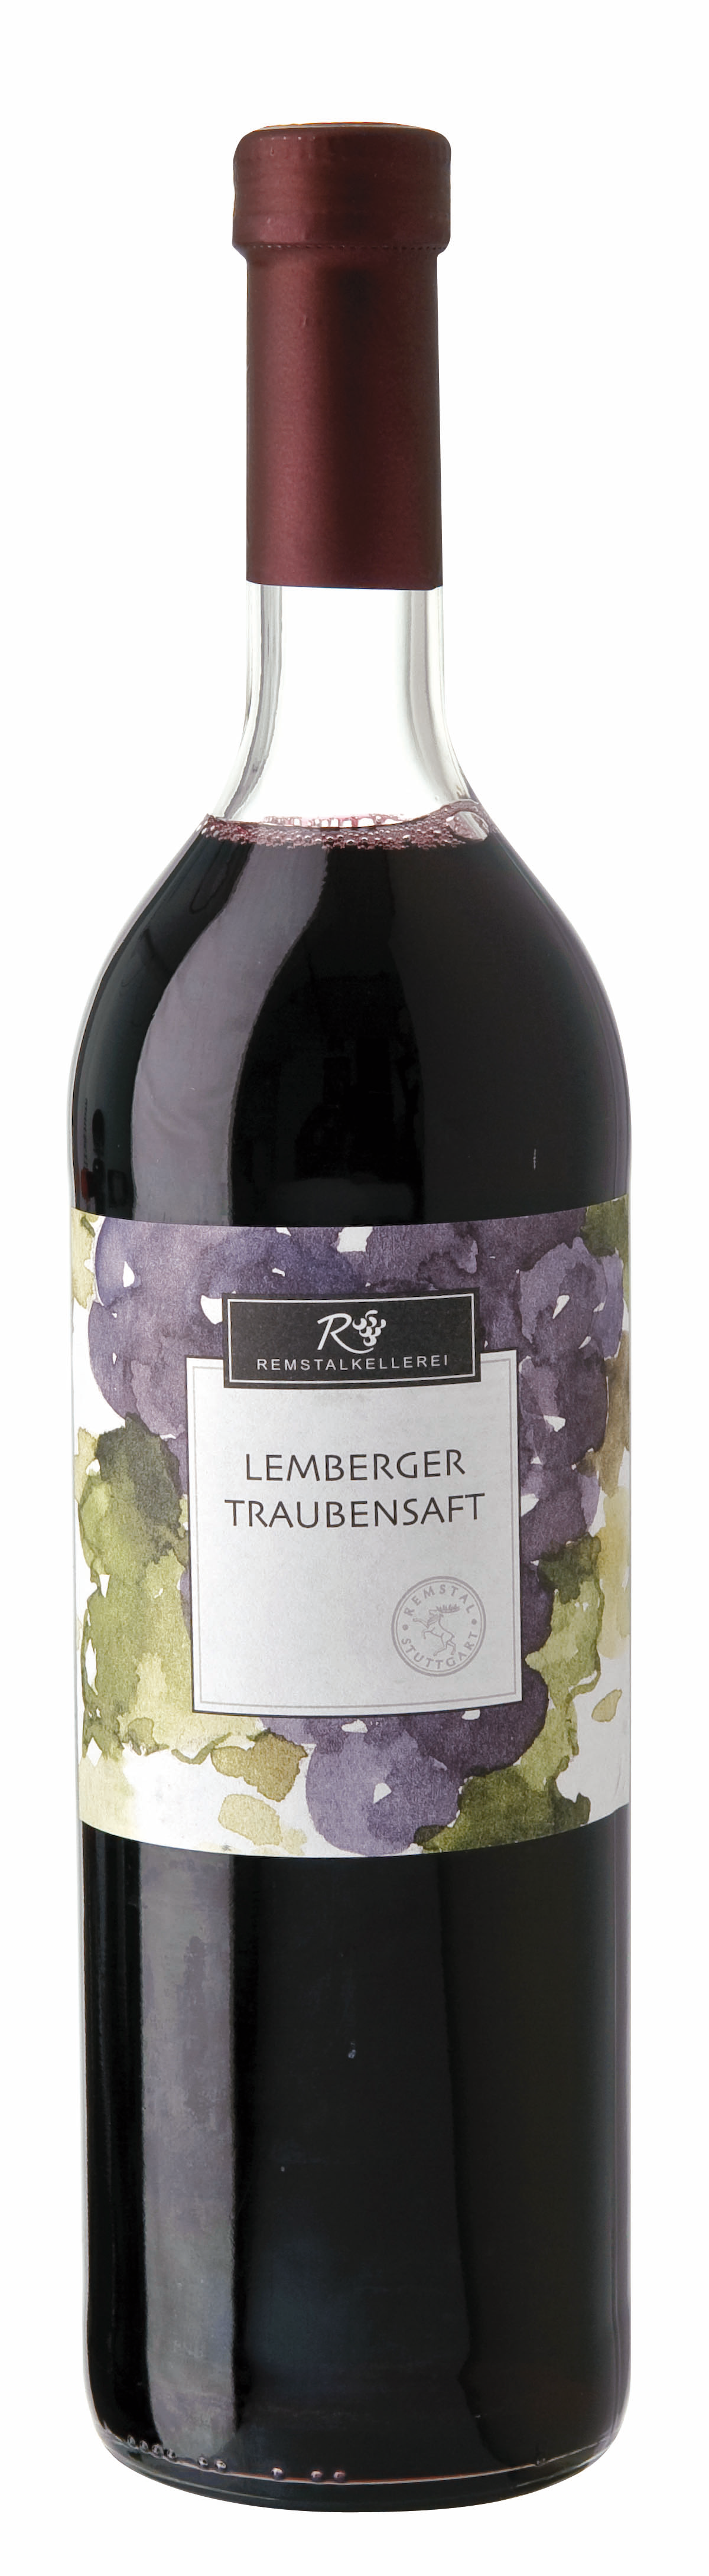 Lemberger Traubensaft rot